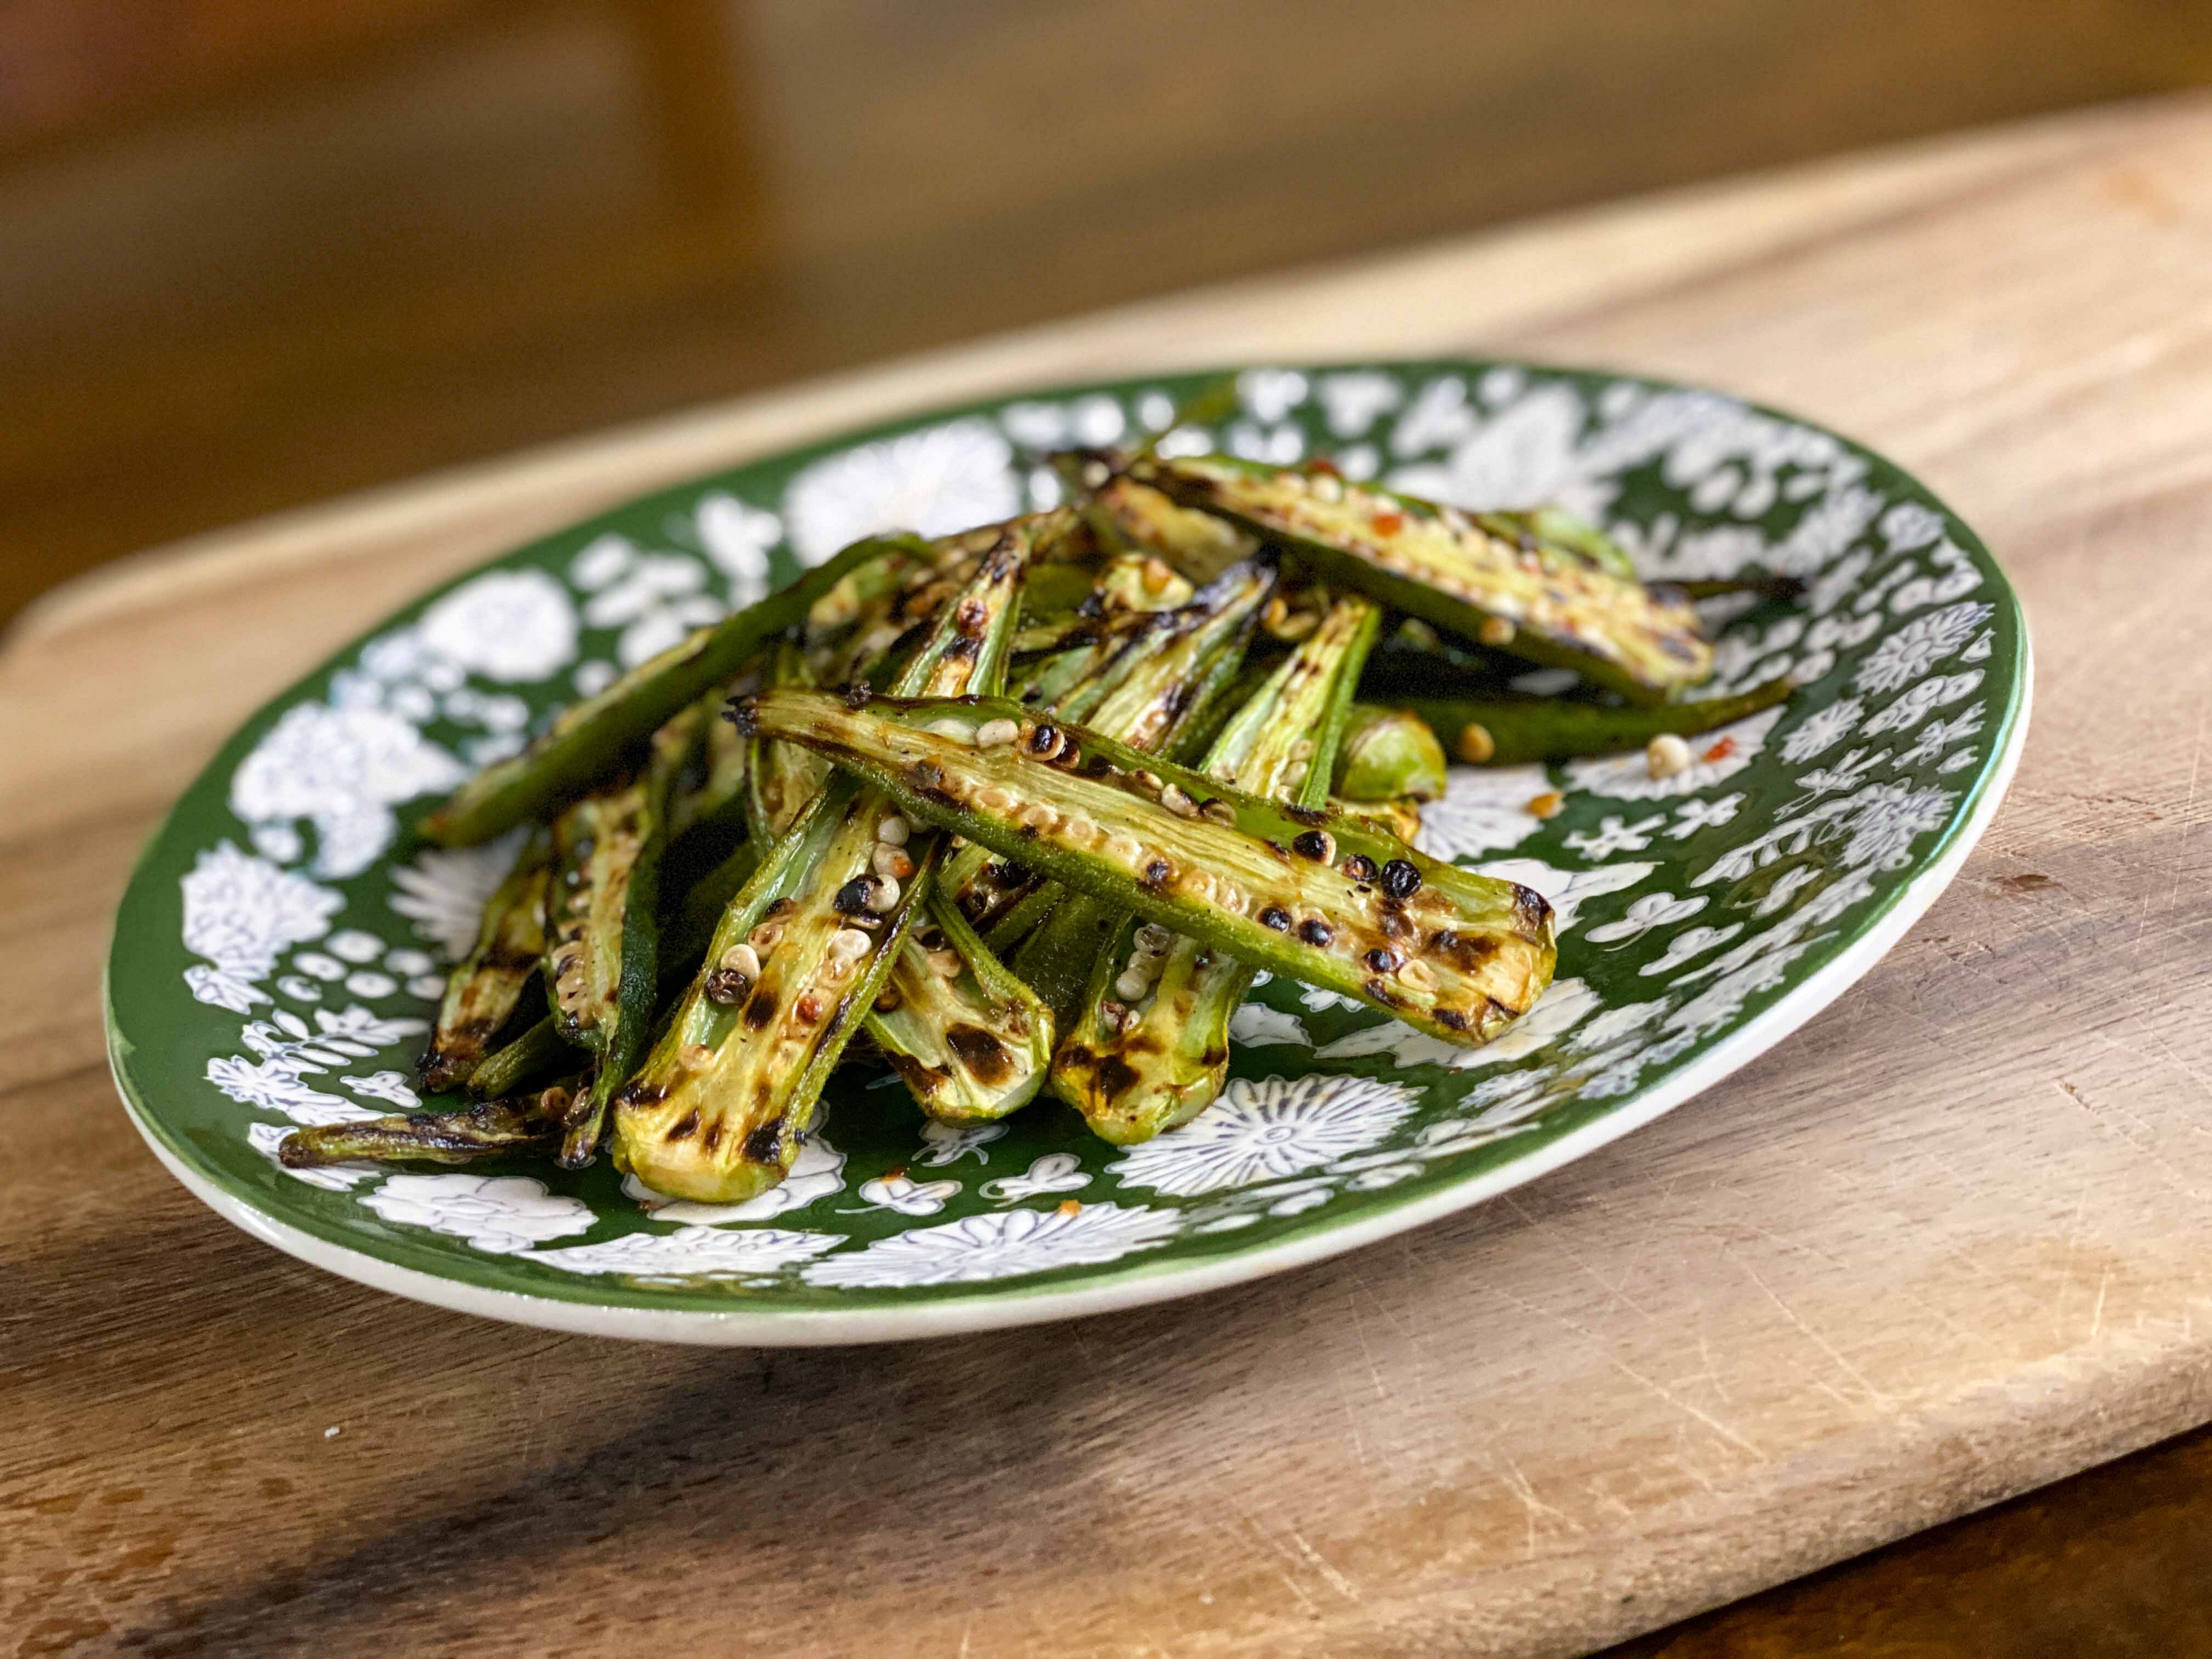 Charred okra, made on a stovetop grill or griddle, on a green-and-white plate. The recipe is from Cooks Without Borders.